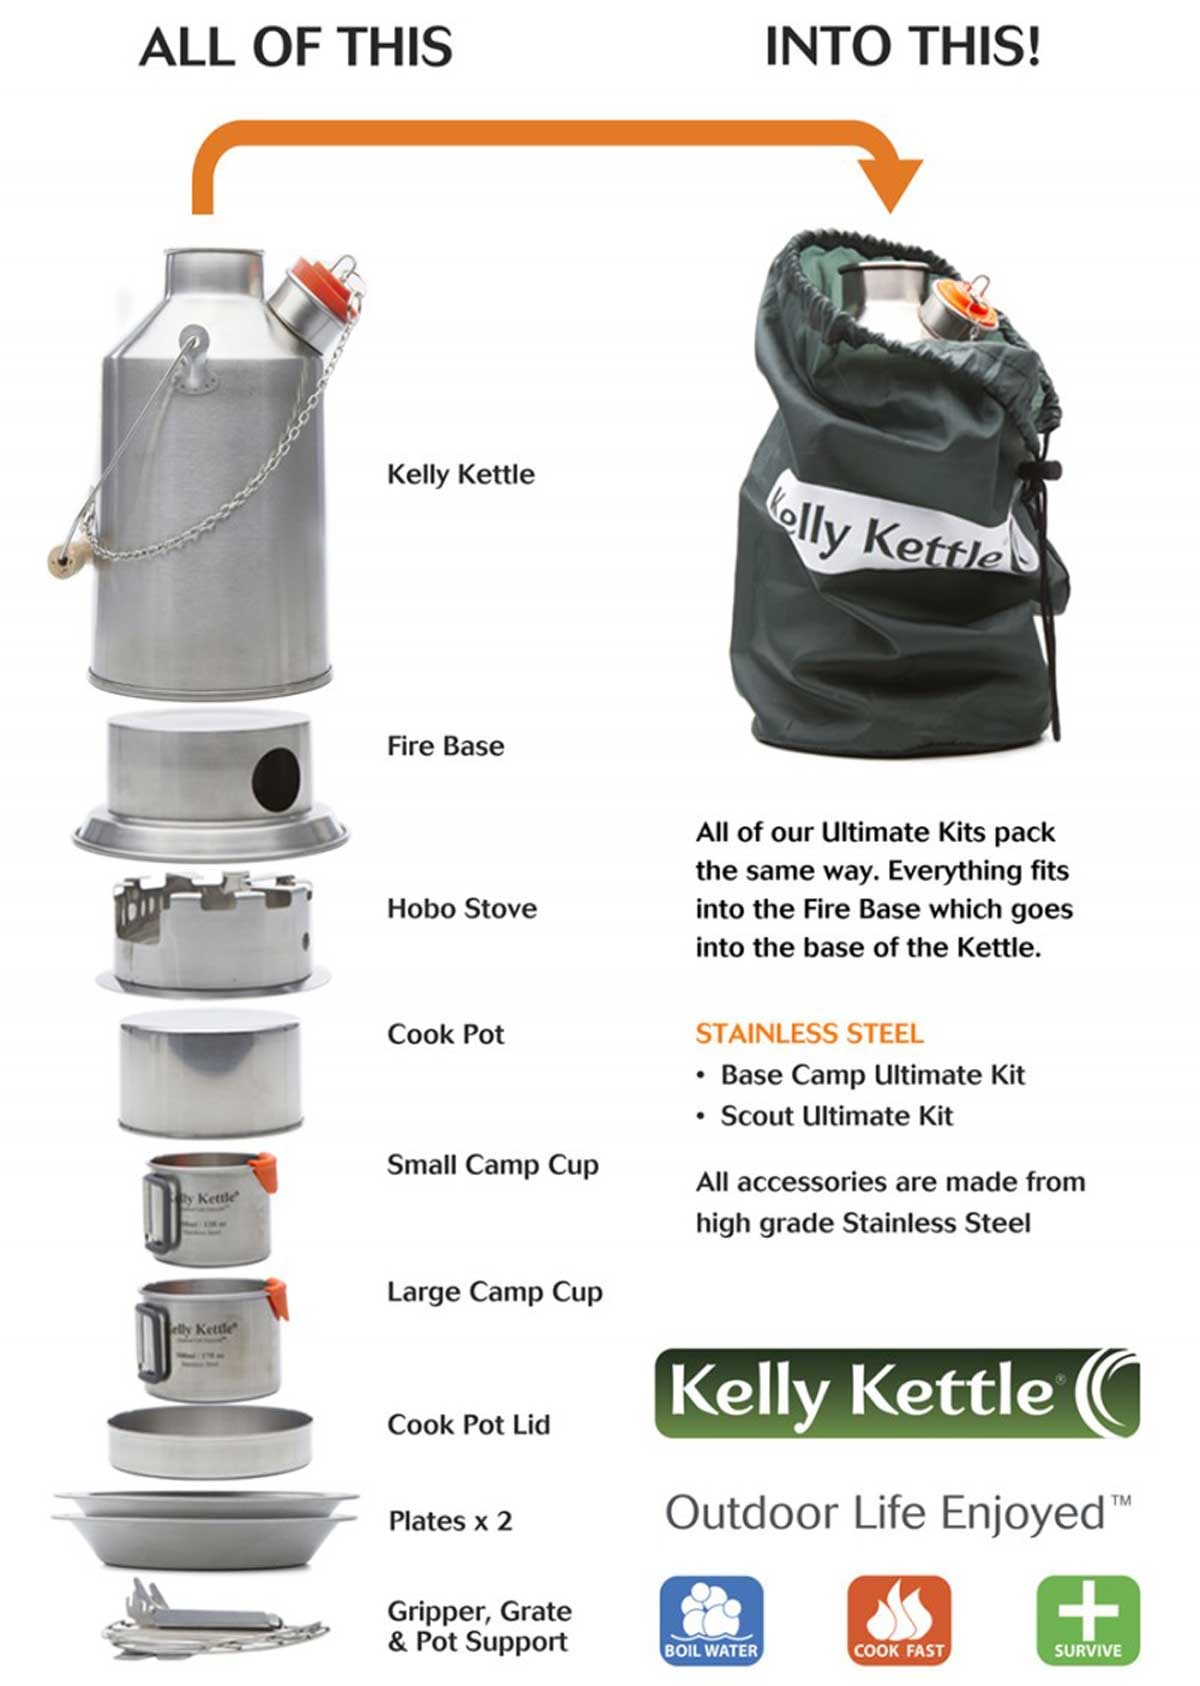 Kelly Kettle Ultimate Scout Kit overview